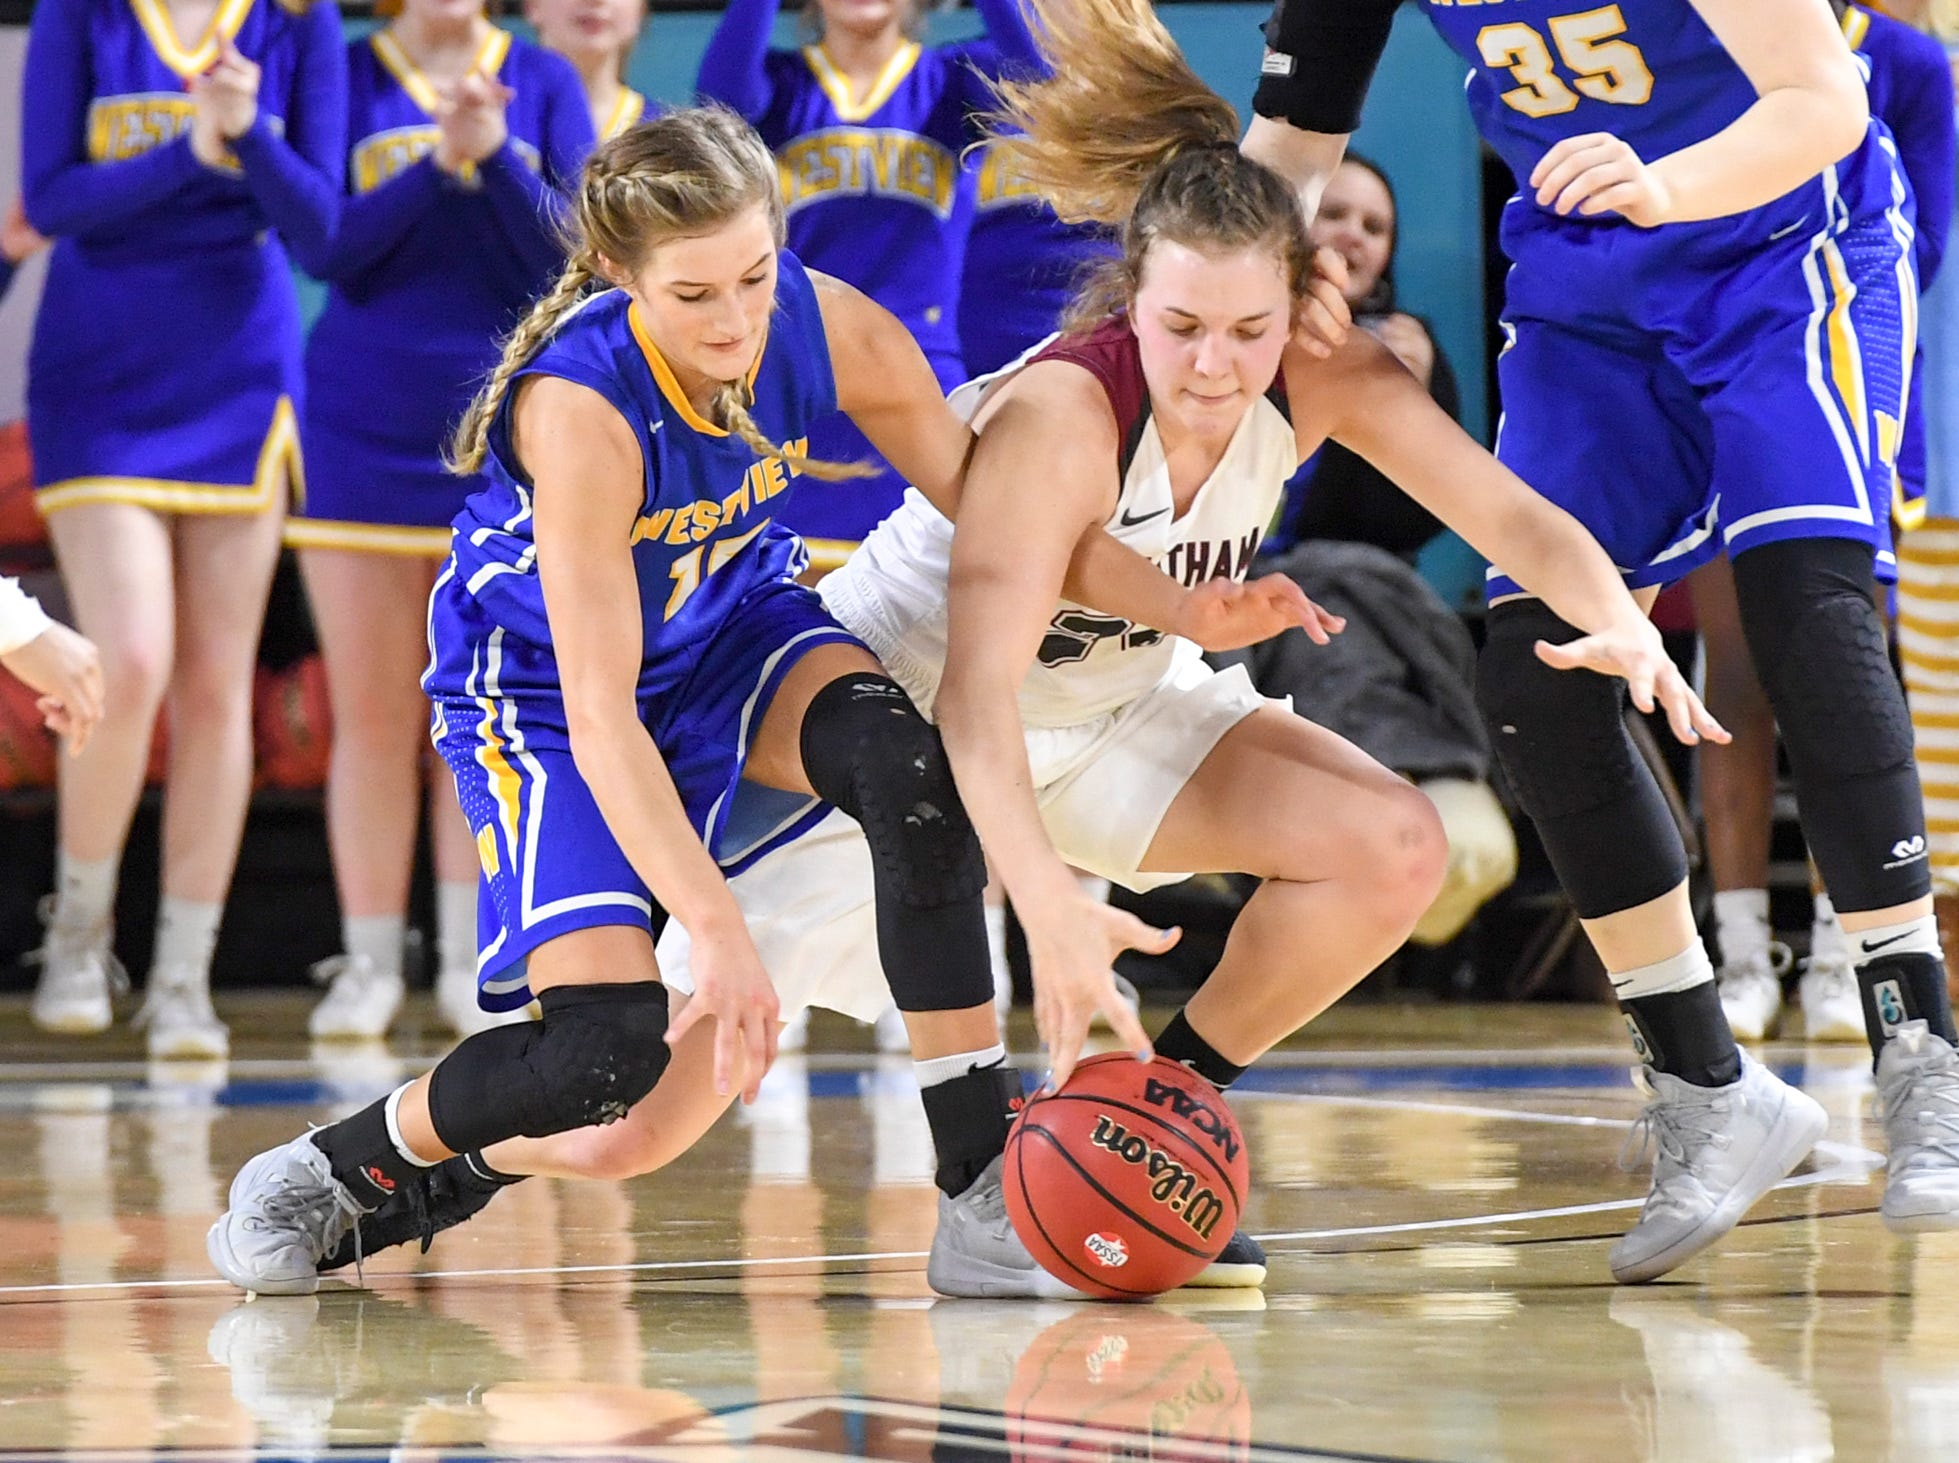 Westview's Alex Callins (15) and Cheatham County's Alli Douglas (24) dive for a loose ball during their Class AA championship game, Saturday, March 9, 2019, in Murfreesboro.